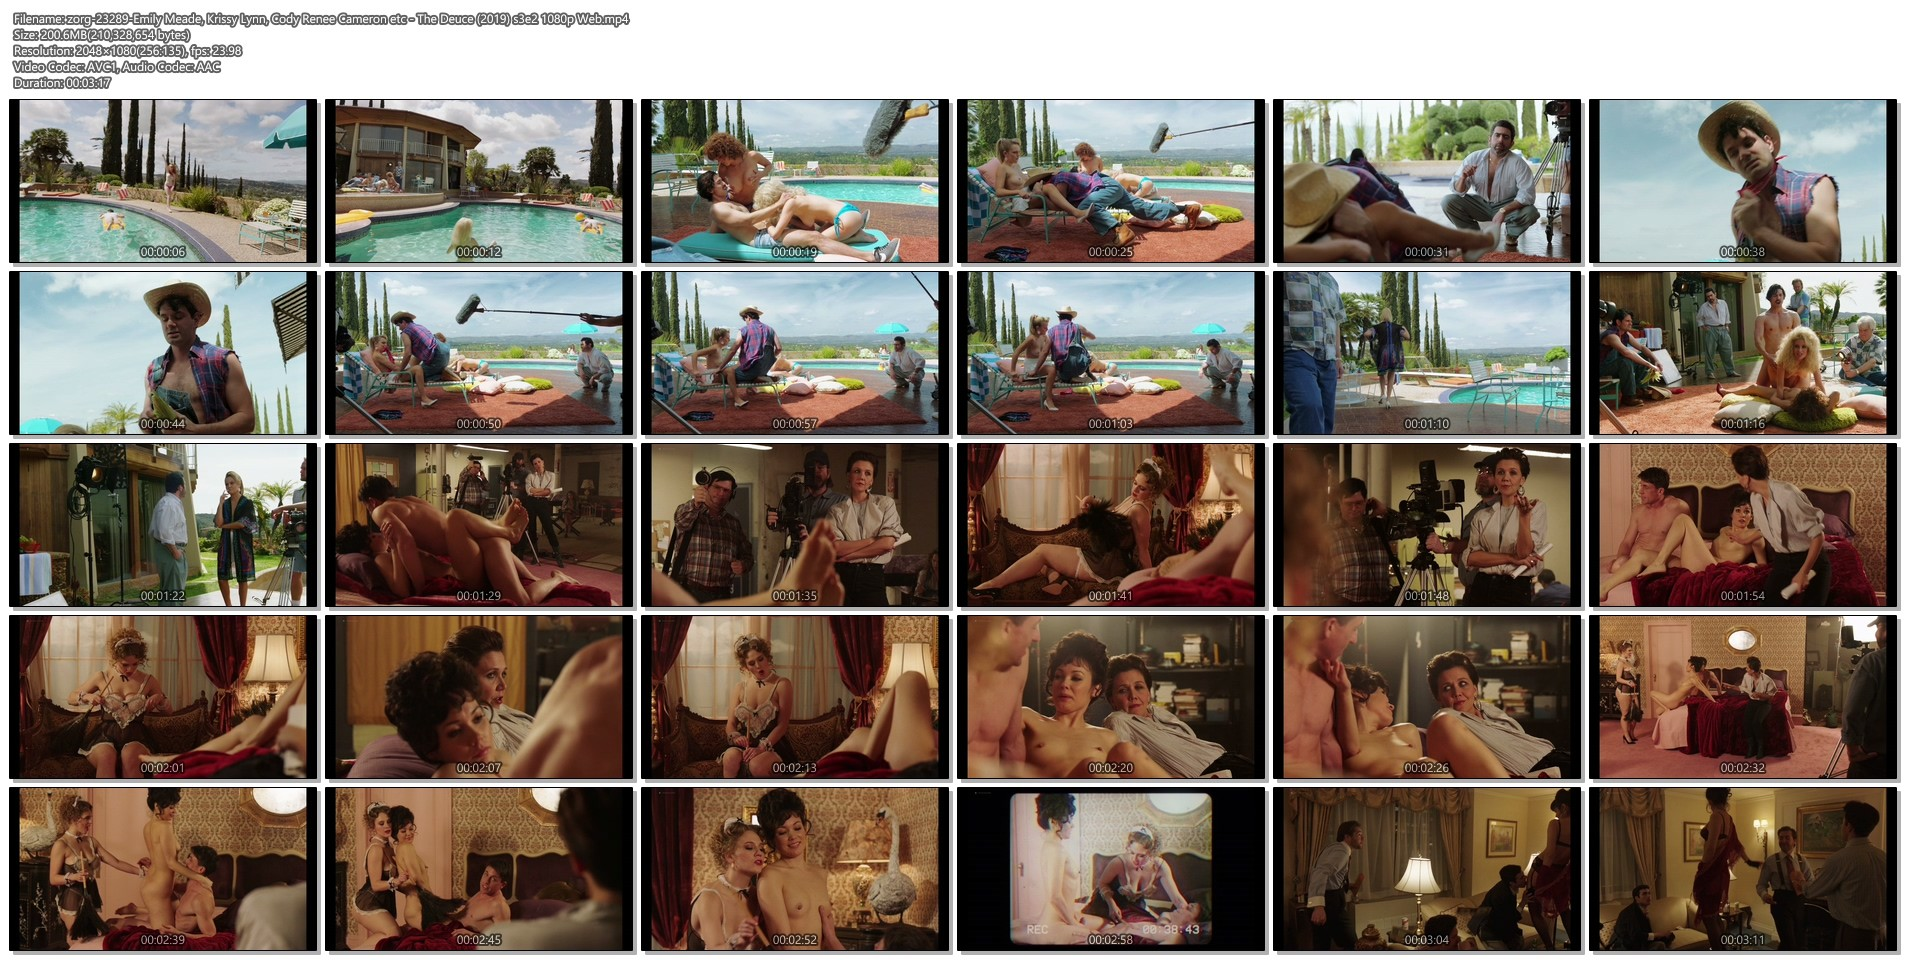 Emily Meade nude sex Krissy Lynn and others nude sex too - The Deuce (2019) s3e2 1080p Web (1)